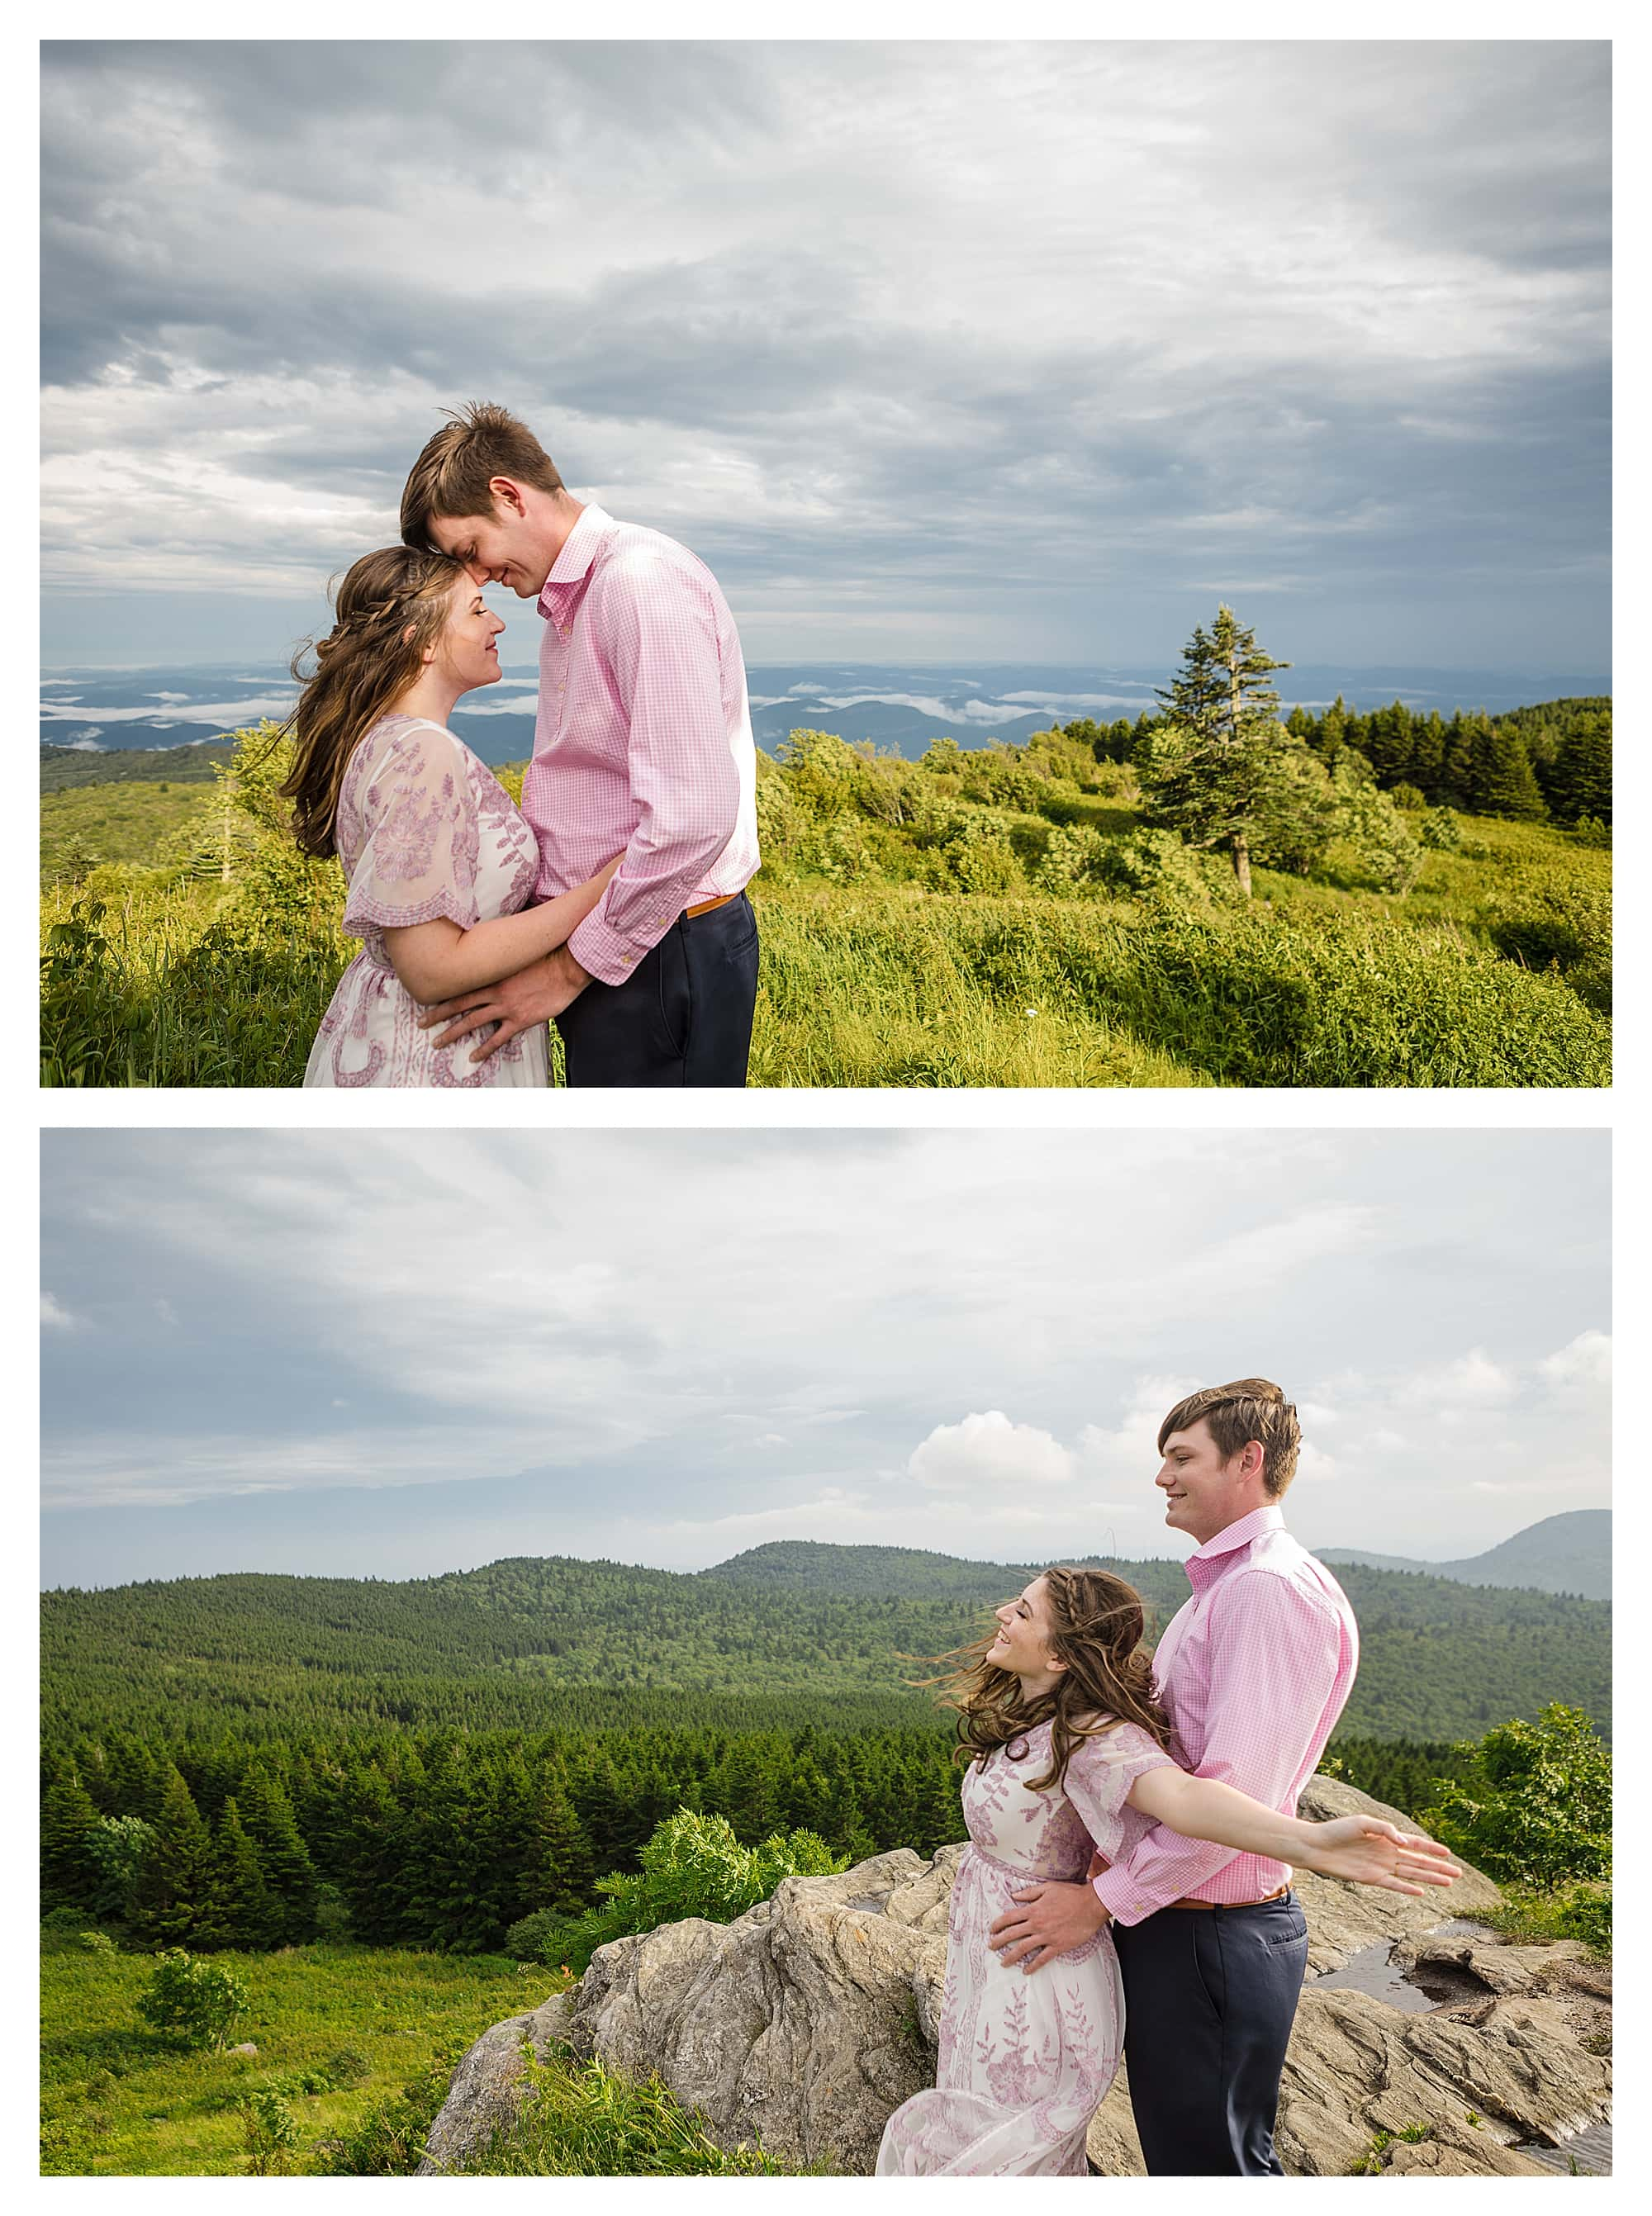 Engaged couple embracing one another on mountain top smiling at camera with mountain range in the background